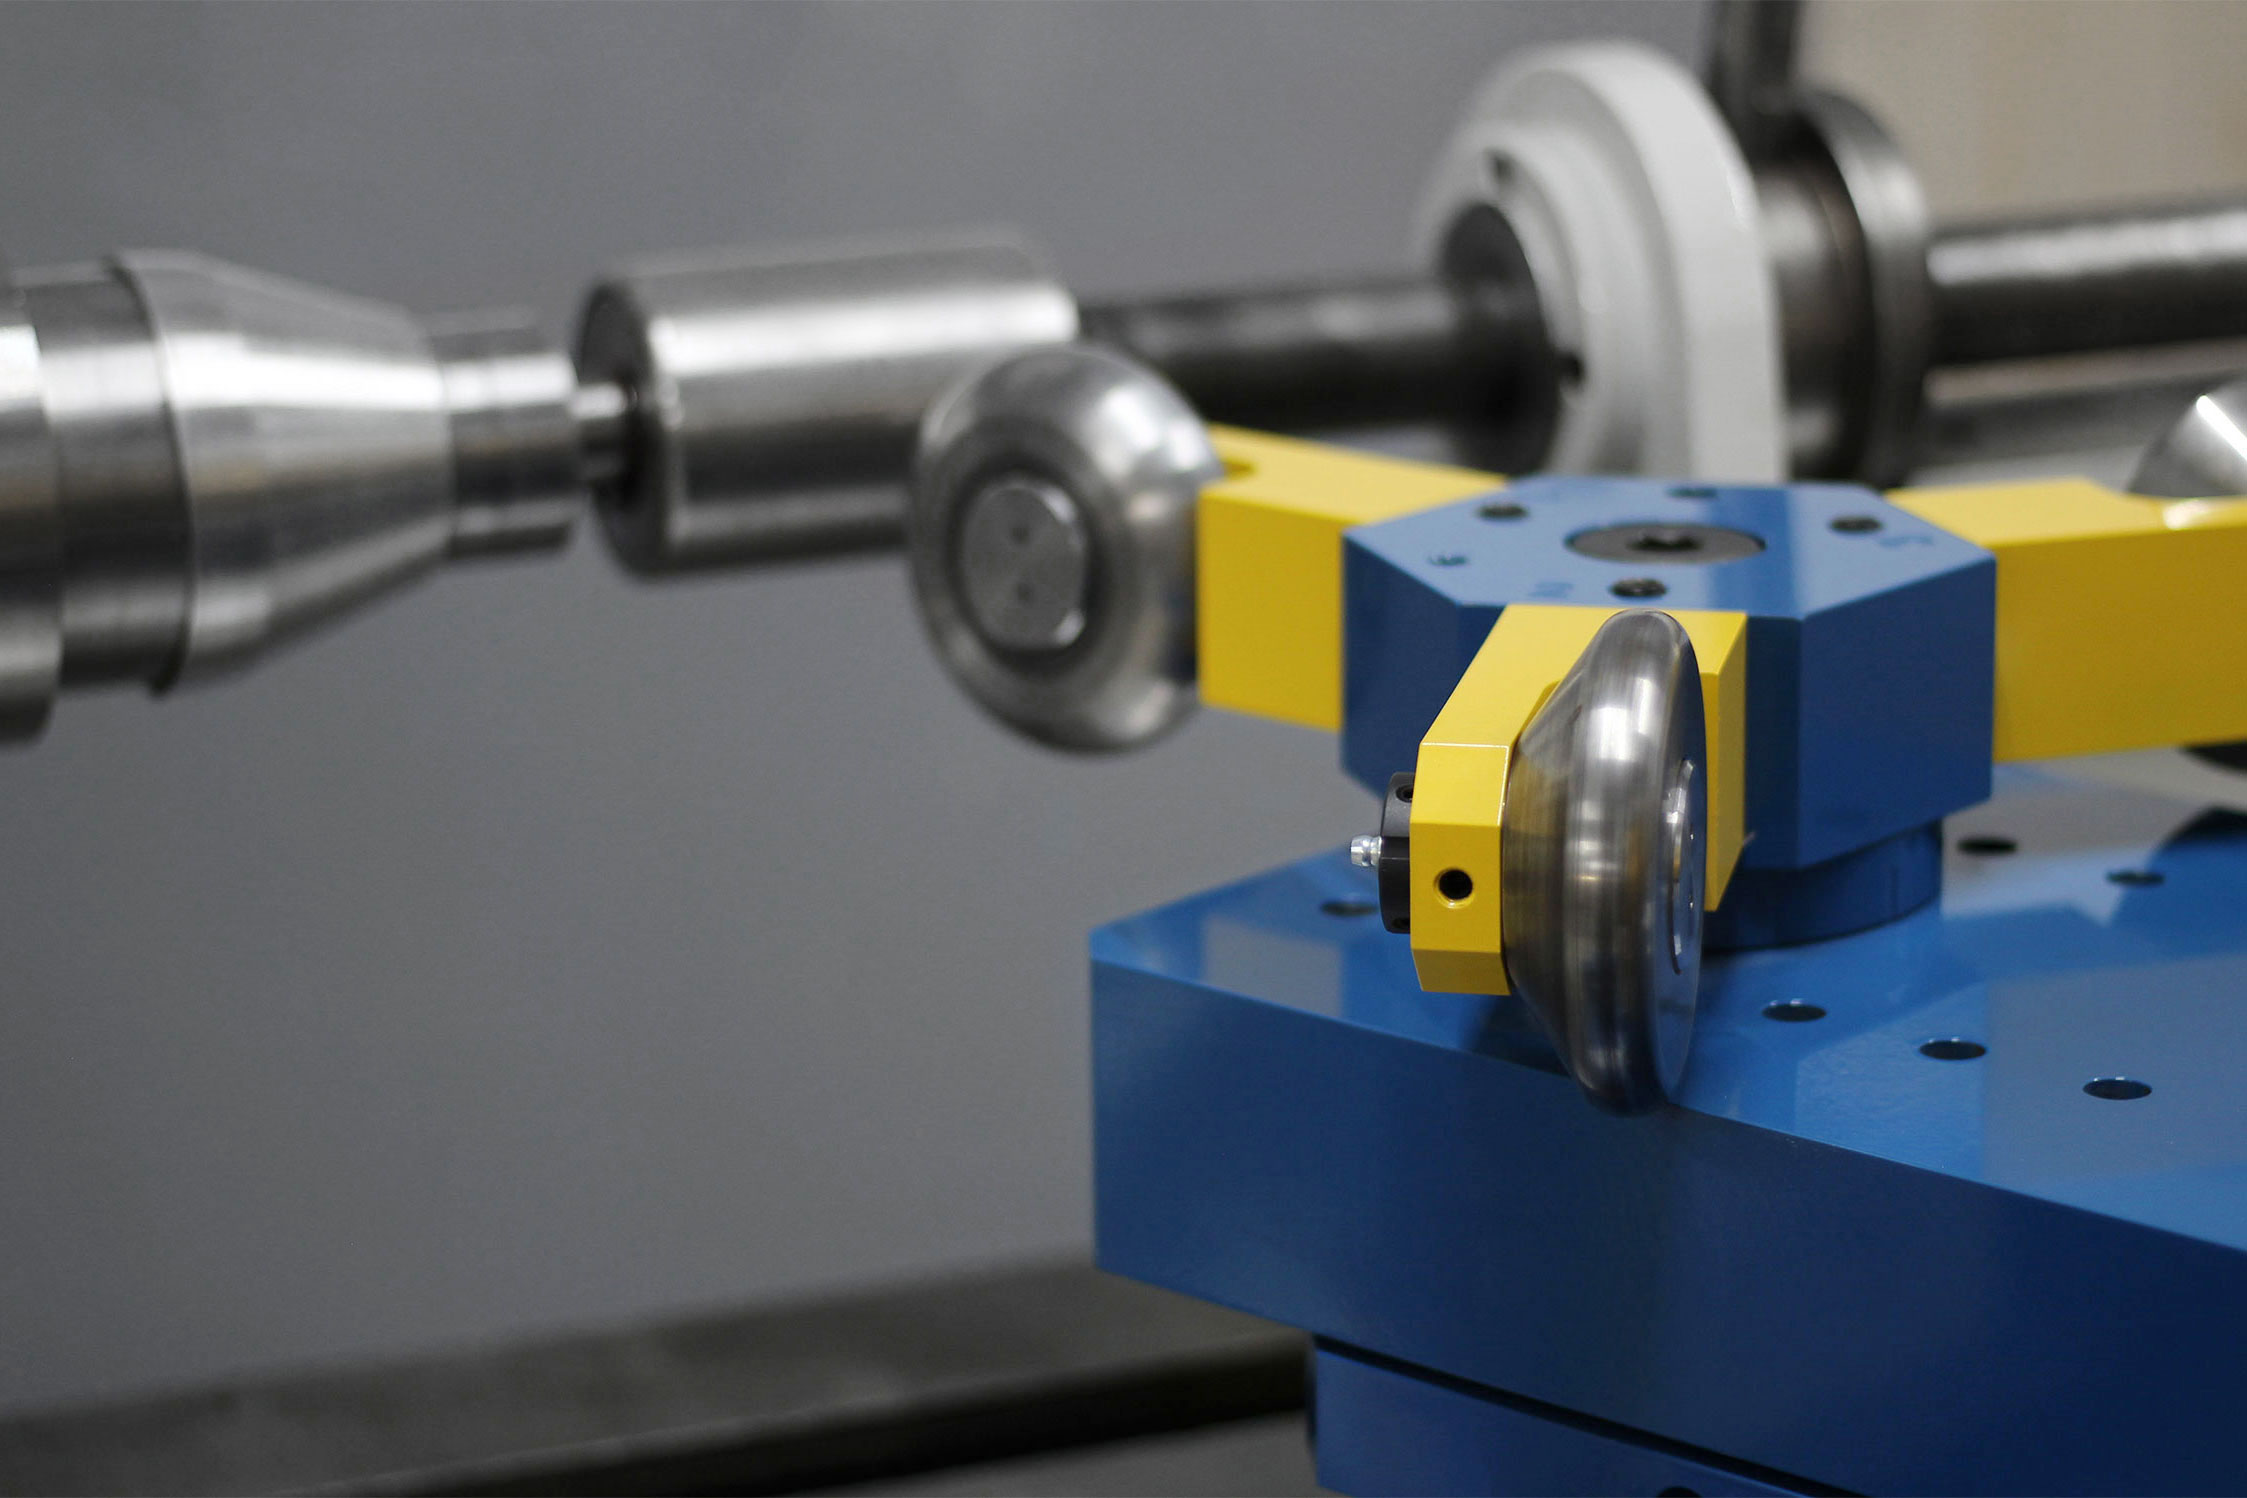 Retrofit your hand spinning lathe financing now available